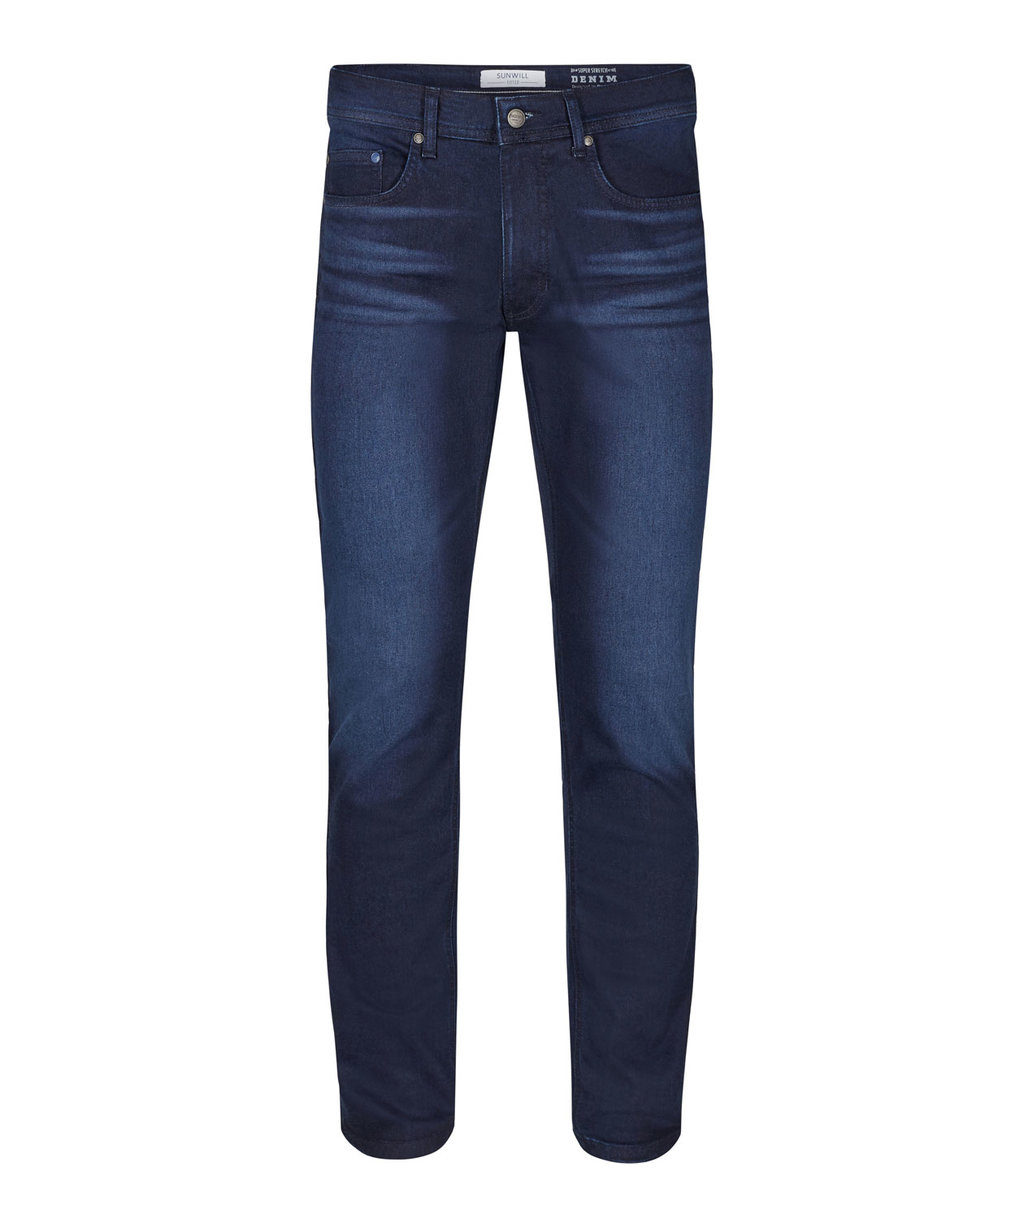 Sunwill Fitted fit jeans, Dark blue washed